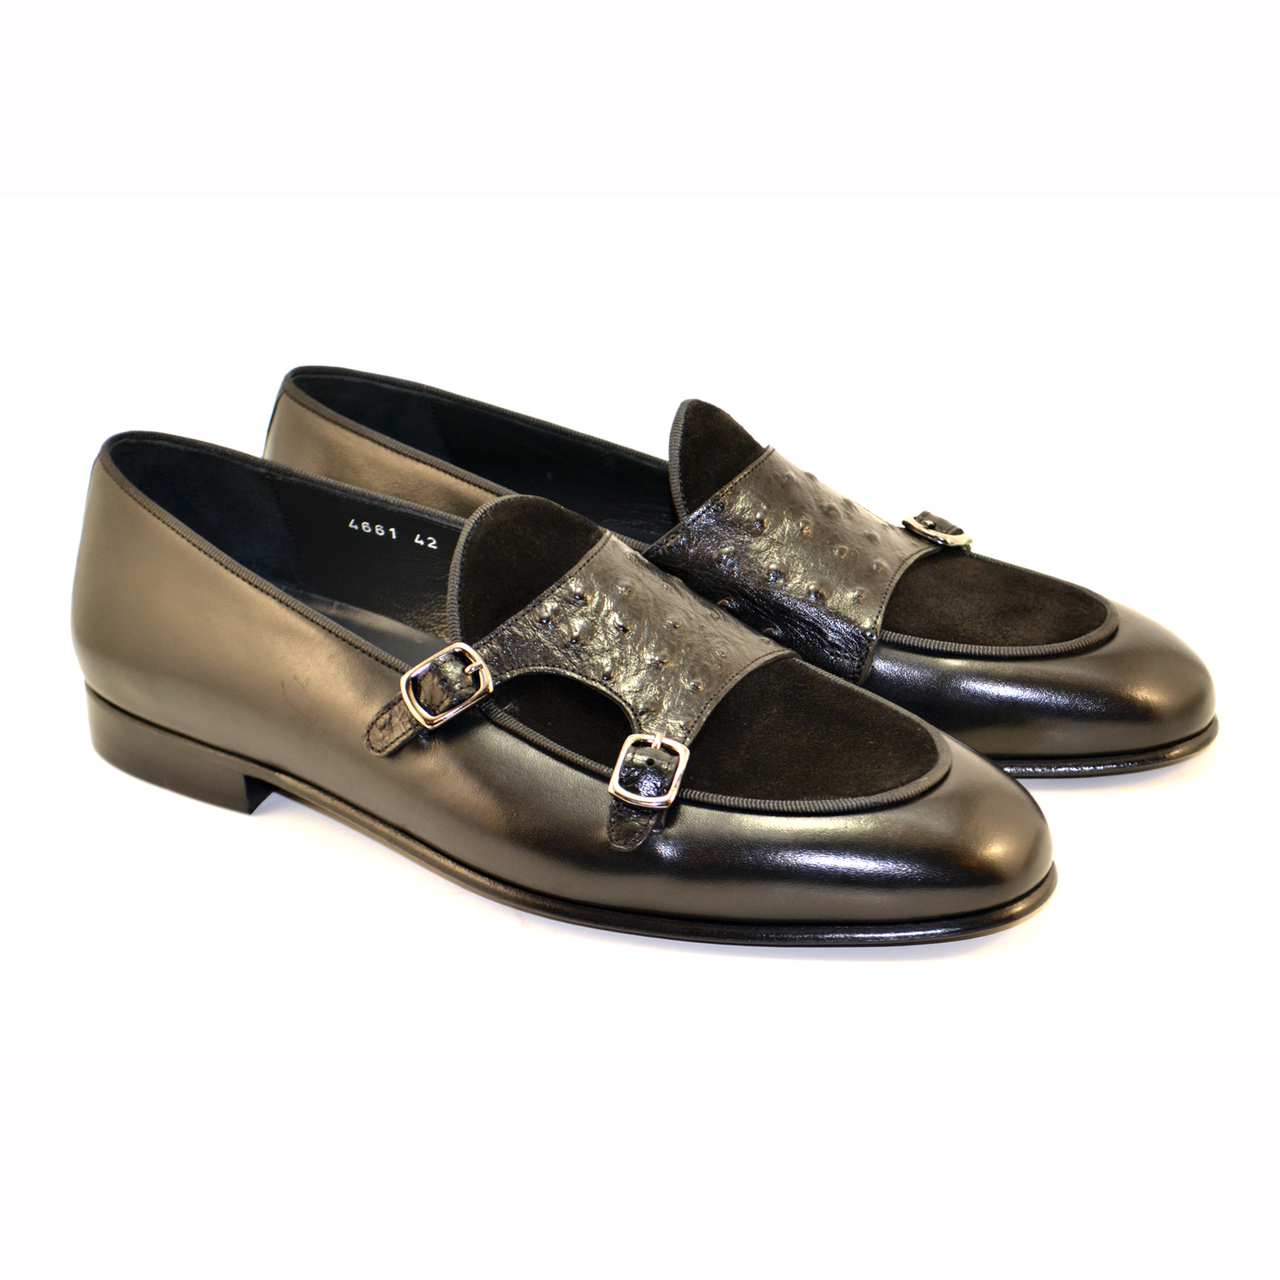 Corrente 4661-Double Monk strap Loafer, Ostrich and suede vamp, Black